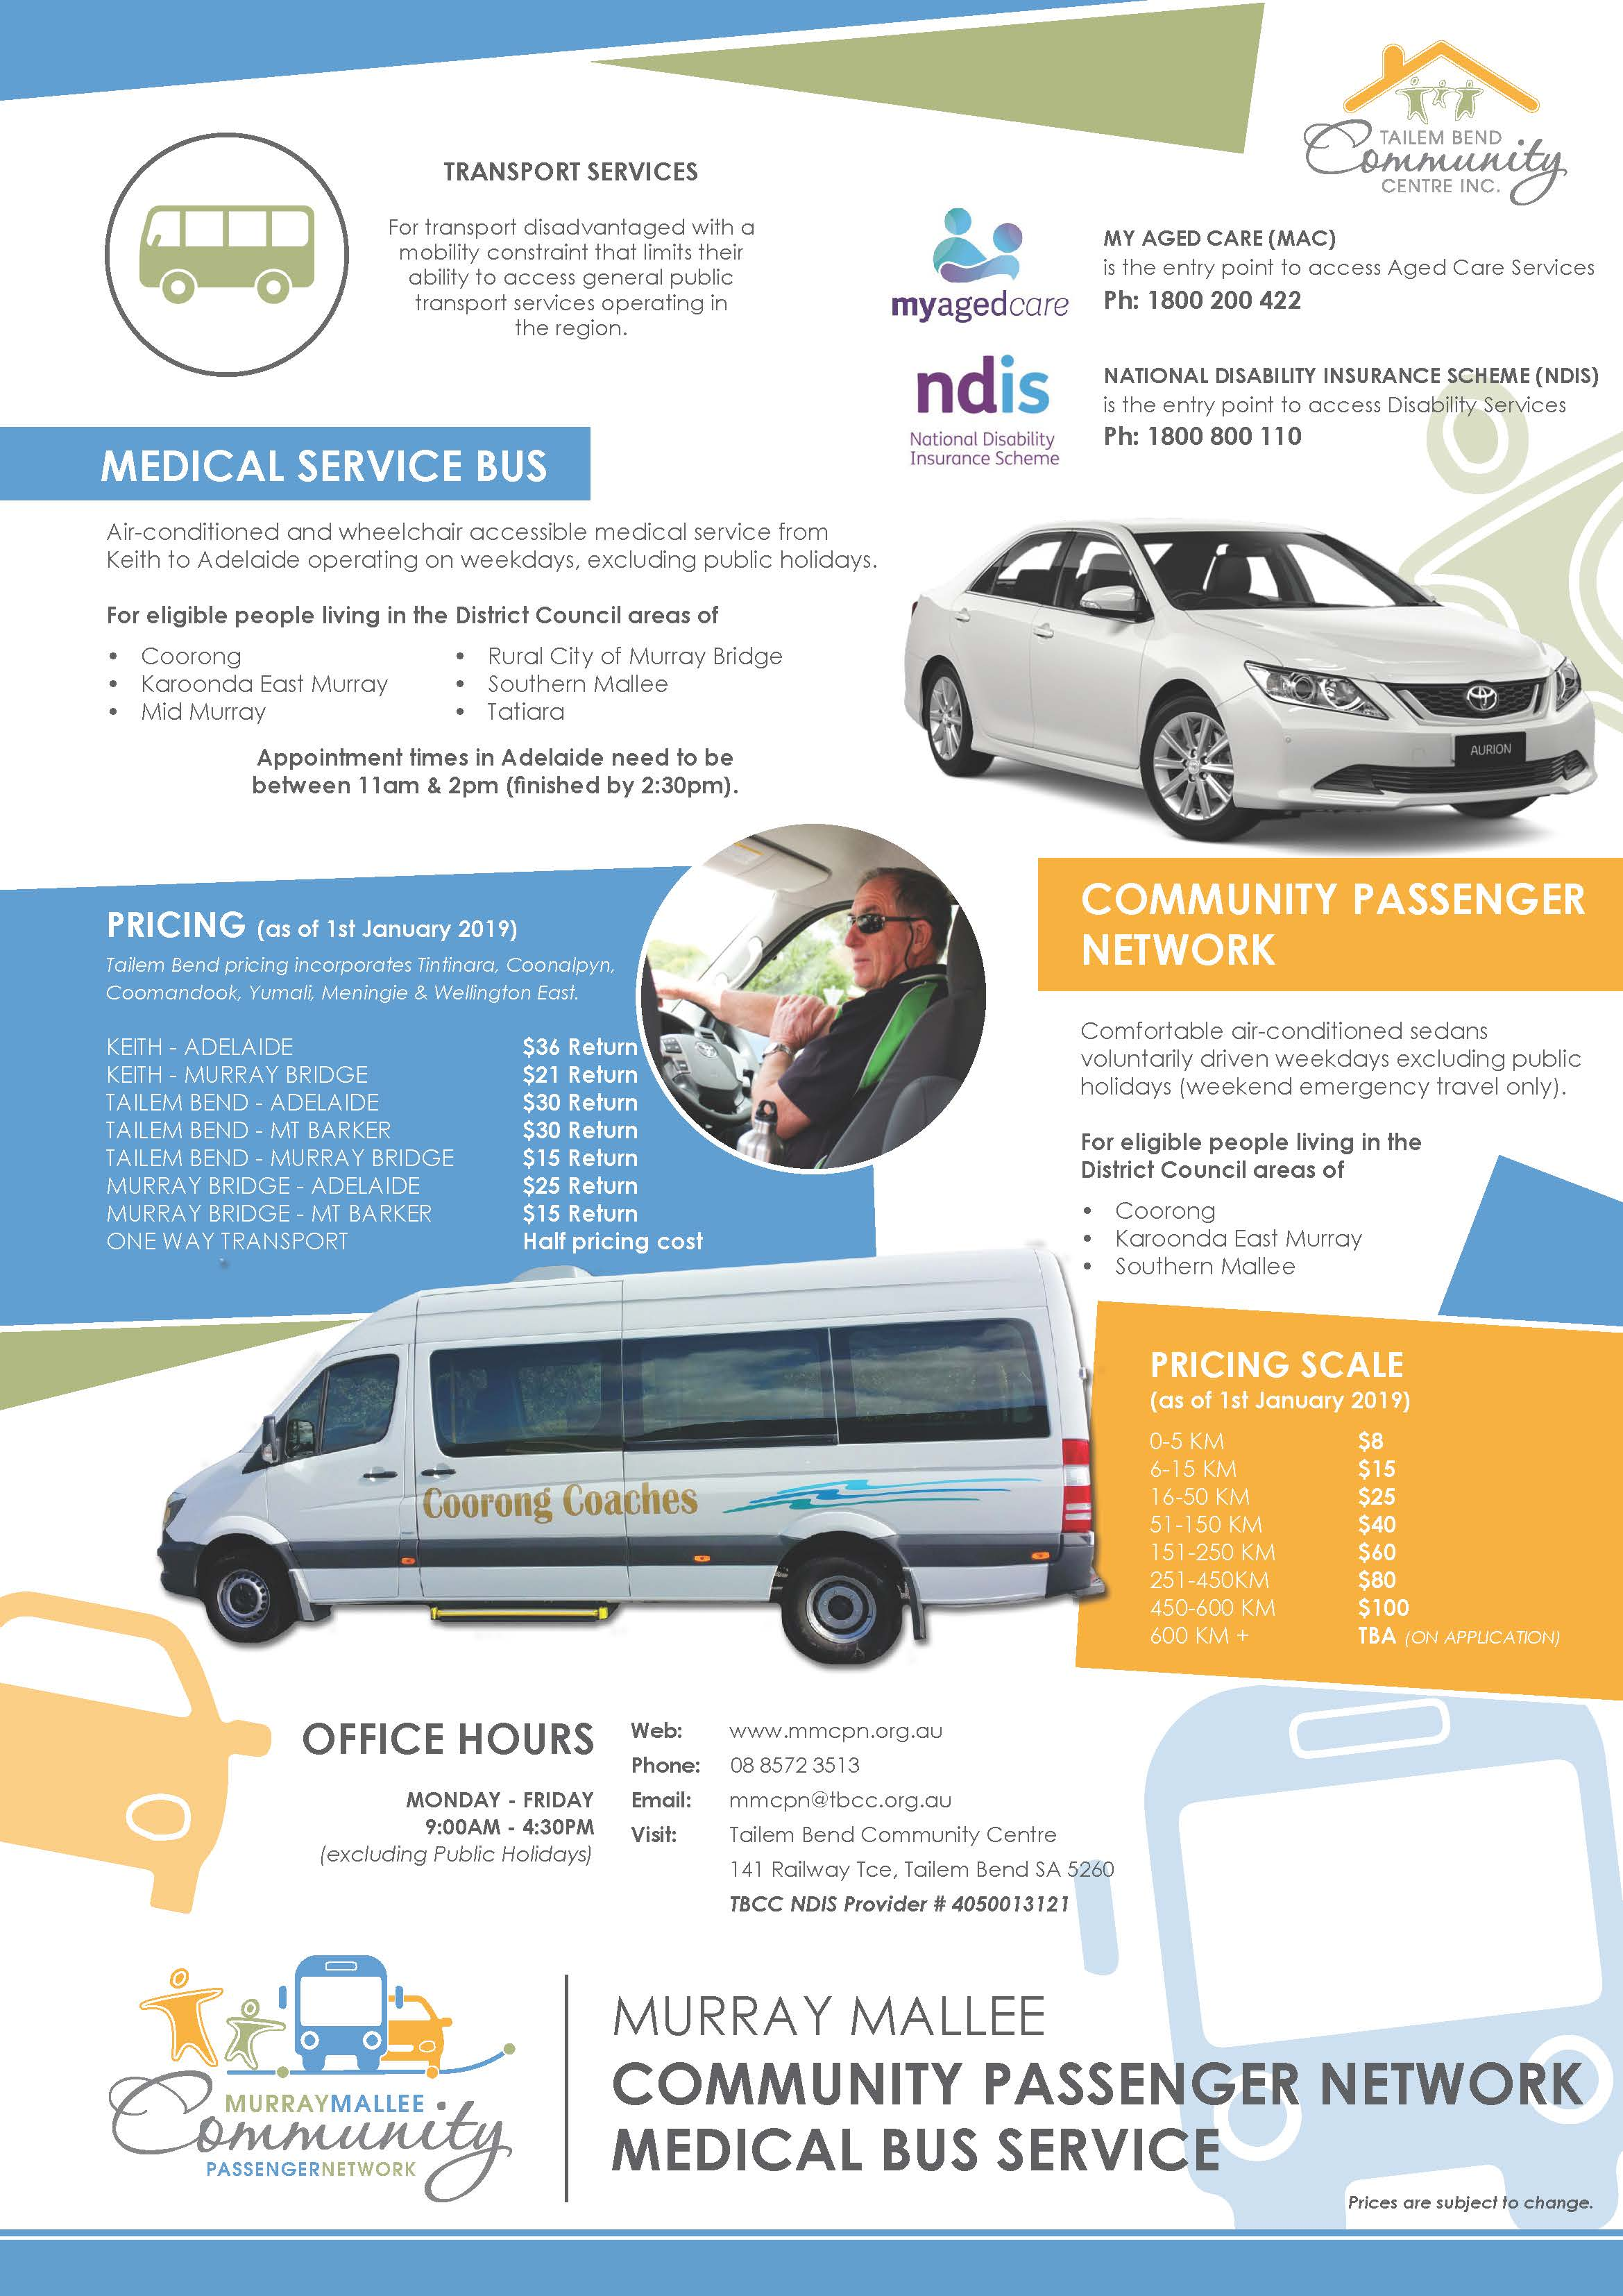 Murray Mallee Community Passenger Network Medical Bus service